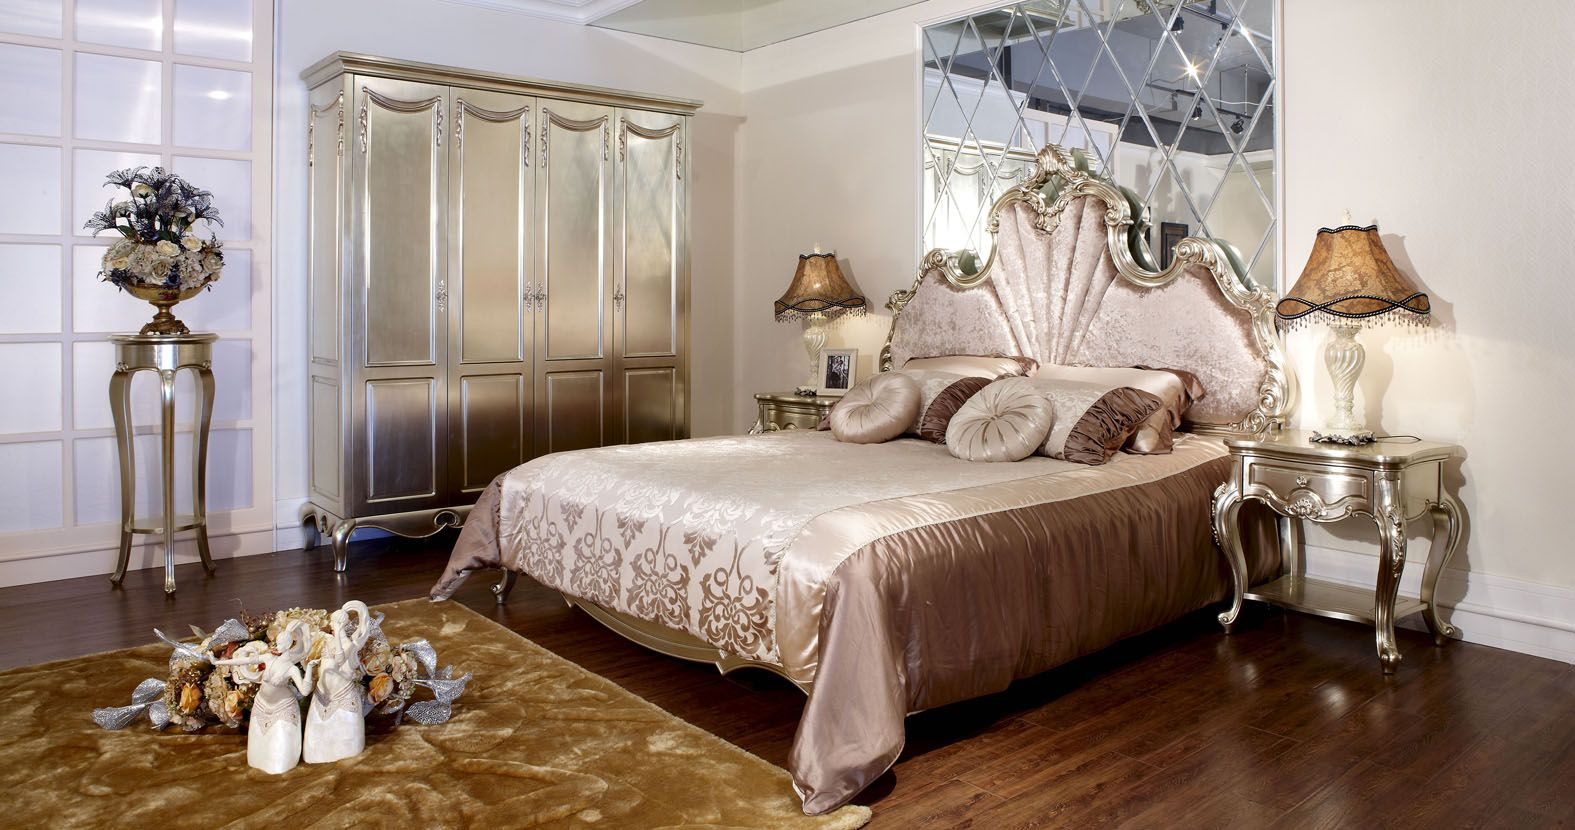 french provincial furniture bedroom neoclassical bedroom furniture french style bedroom furniture - French Style Bedrooms Ideas